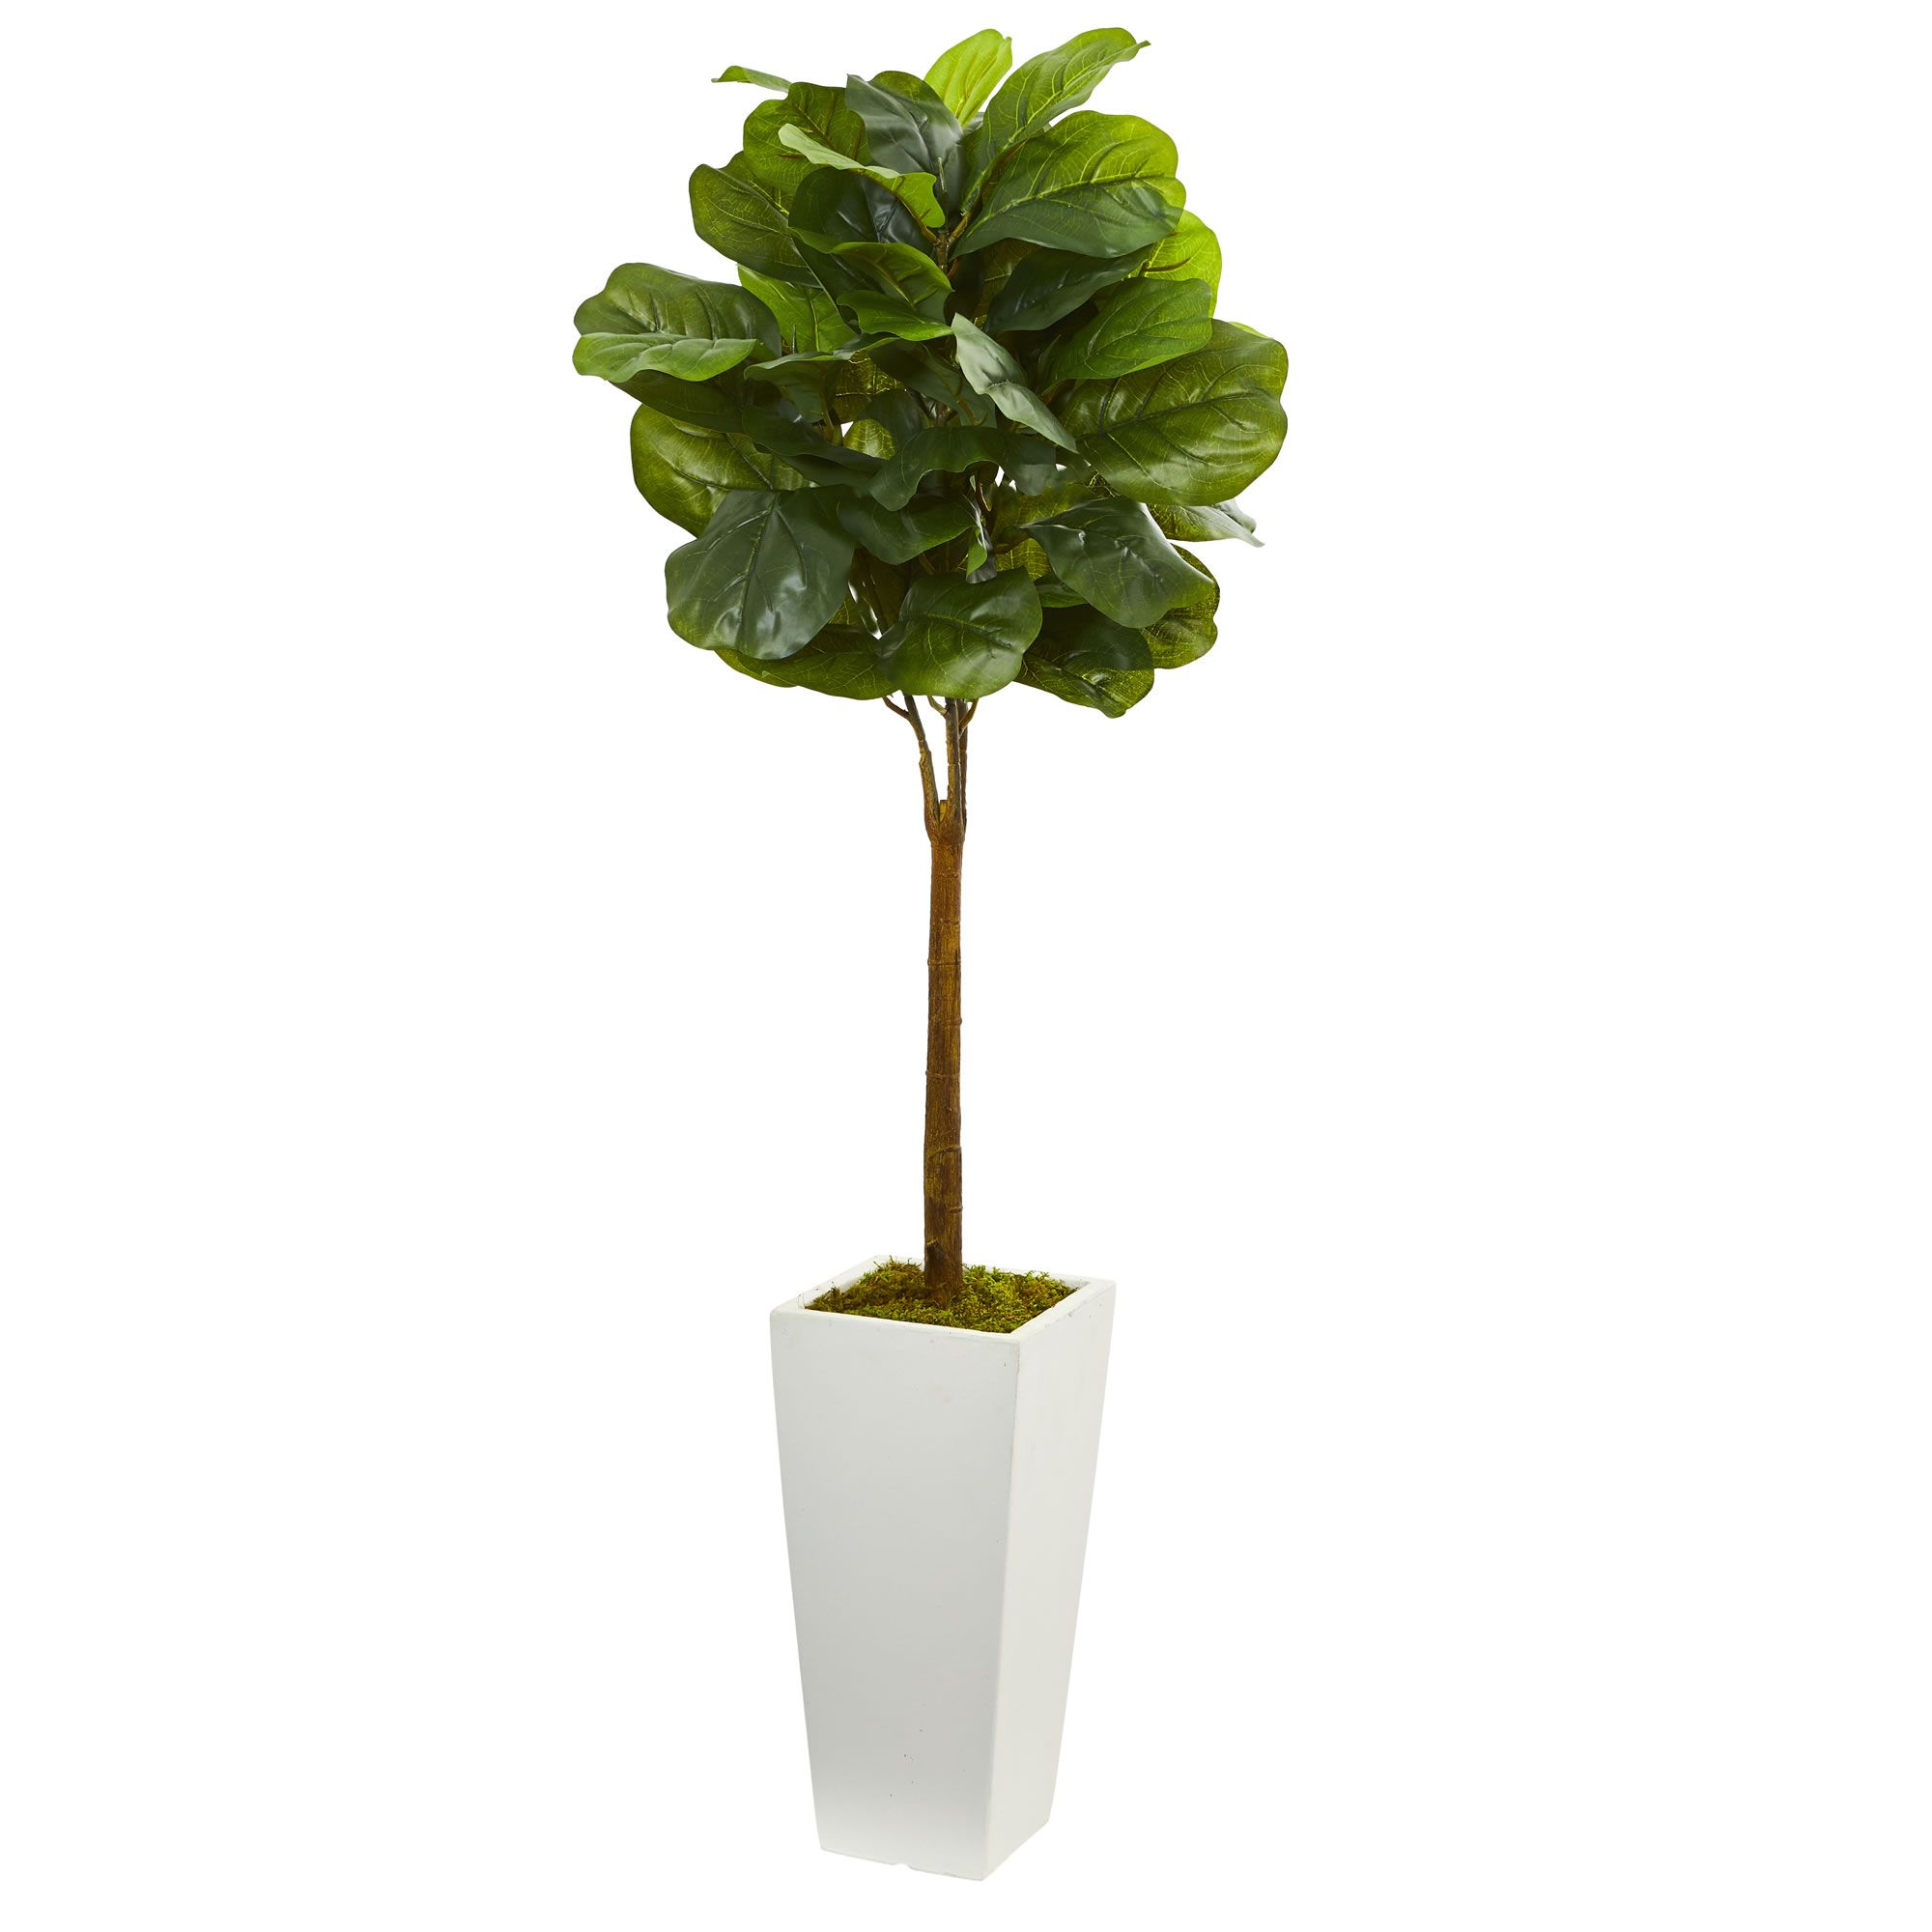 With A Noticeable Sheen Coating On Its Leaves The Fiddle Leaf Tree Is An Attractive Addition To Your Home Decor The Whi Artificial Tree Faux Tree Faux Plants